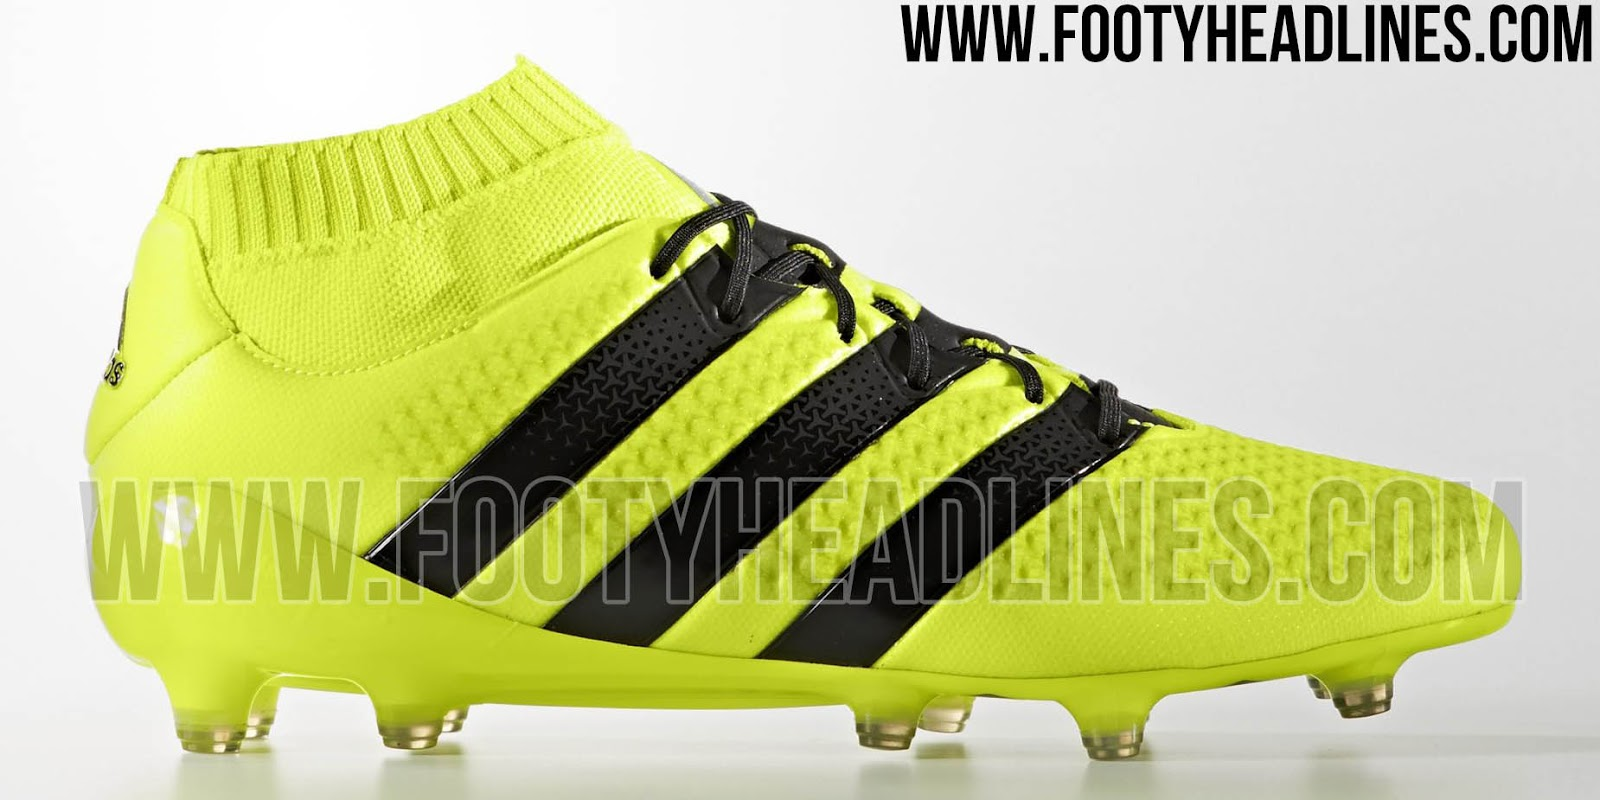 solar yellow adidas ace primeknit 2016 2017 boots leaked. Black Bedroom Furniture Sets. Home Design Ideas